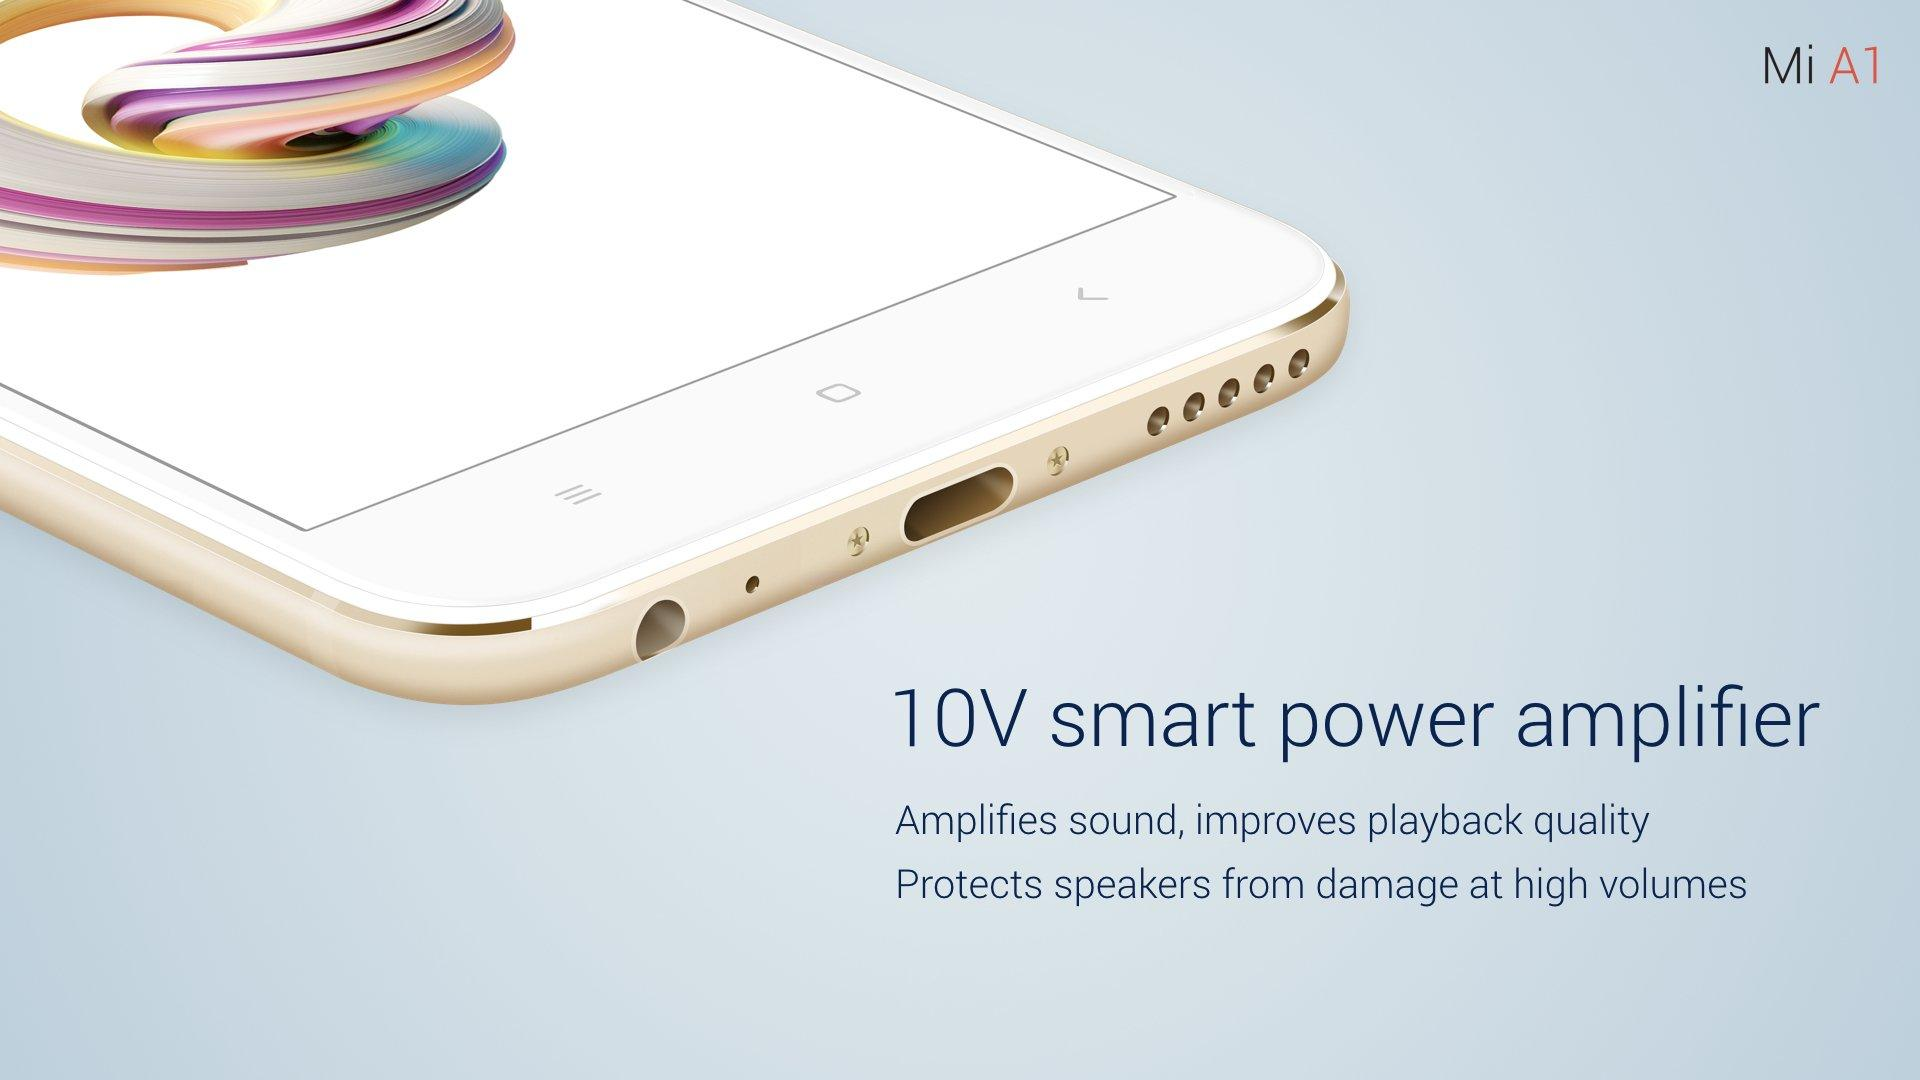 Xiaomi Mi A1 brings Android One, Google Assistant to the